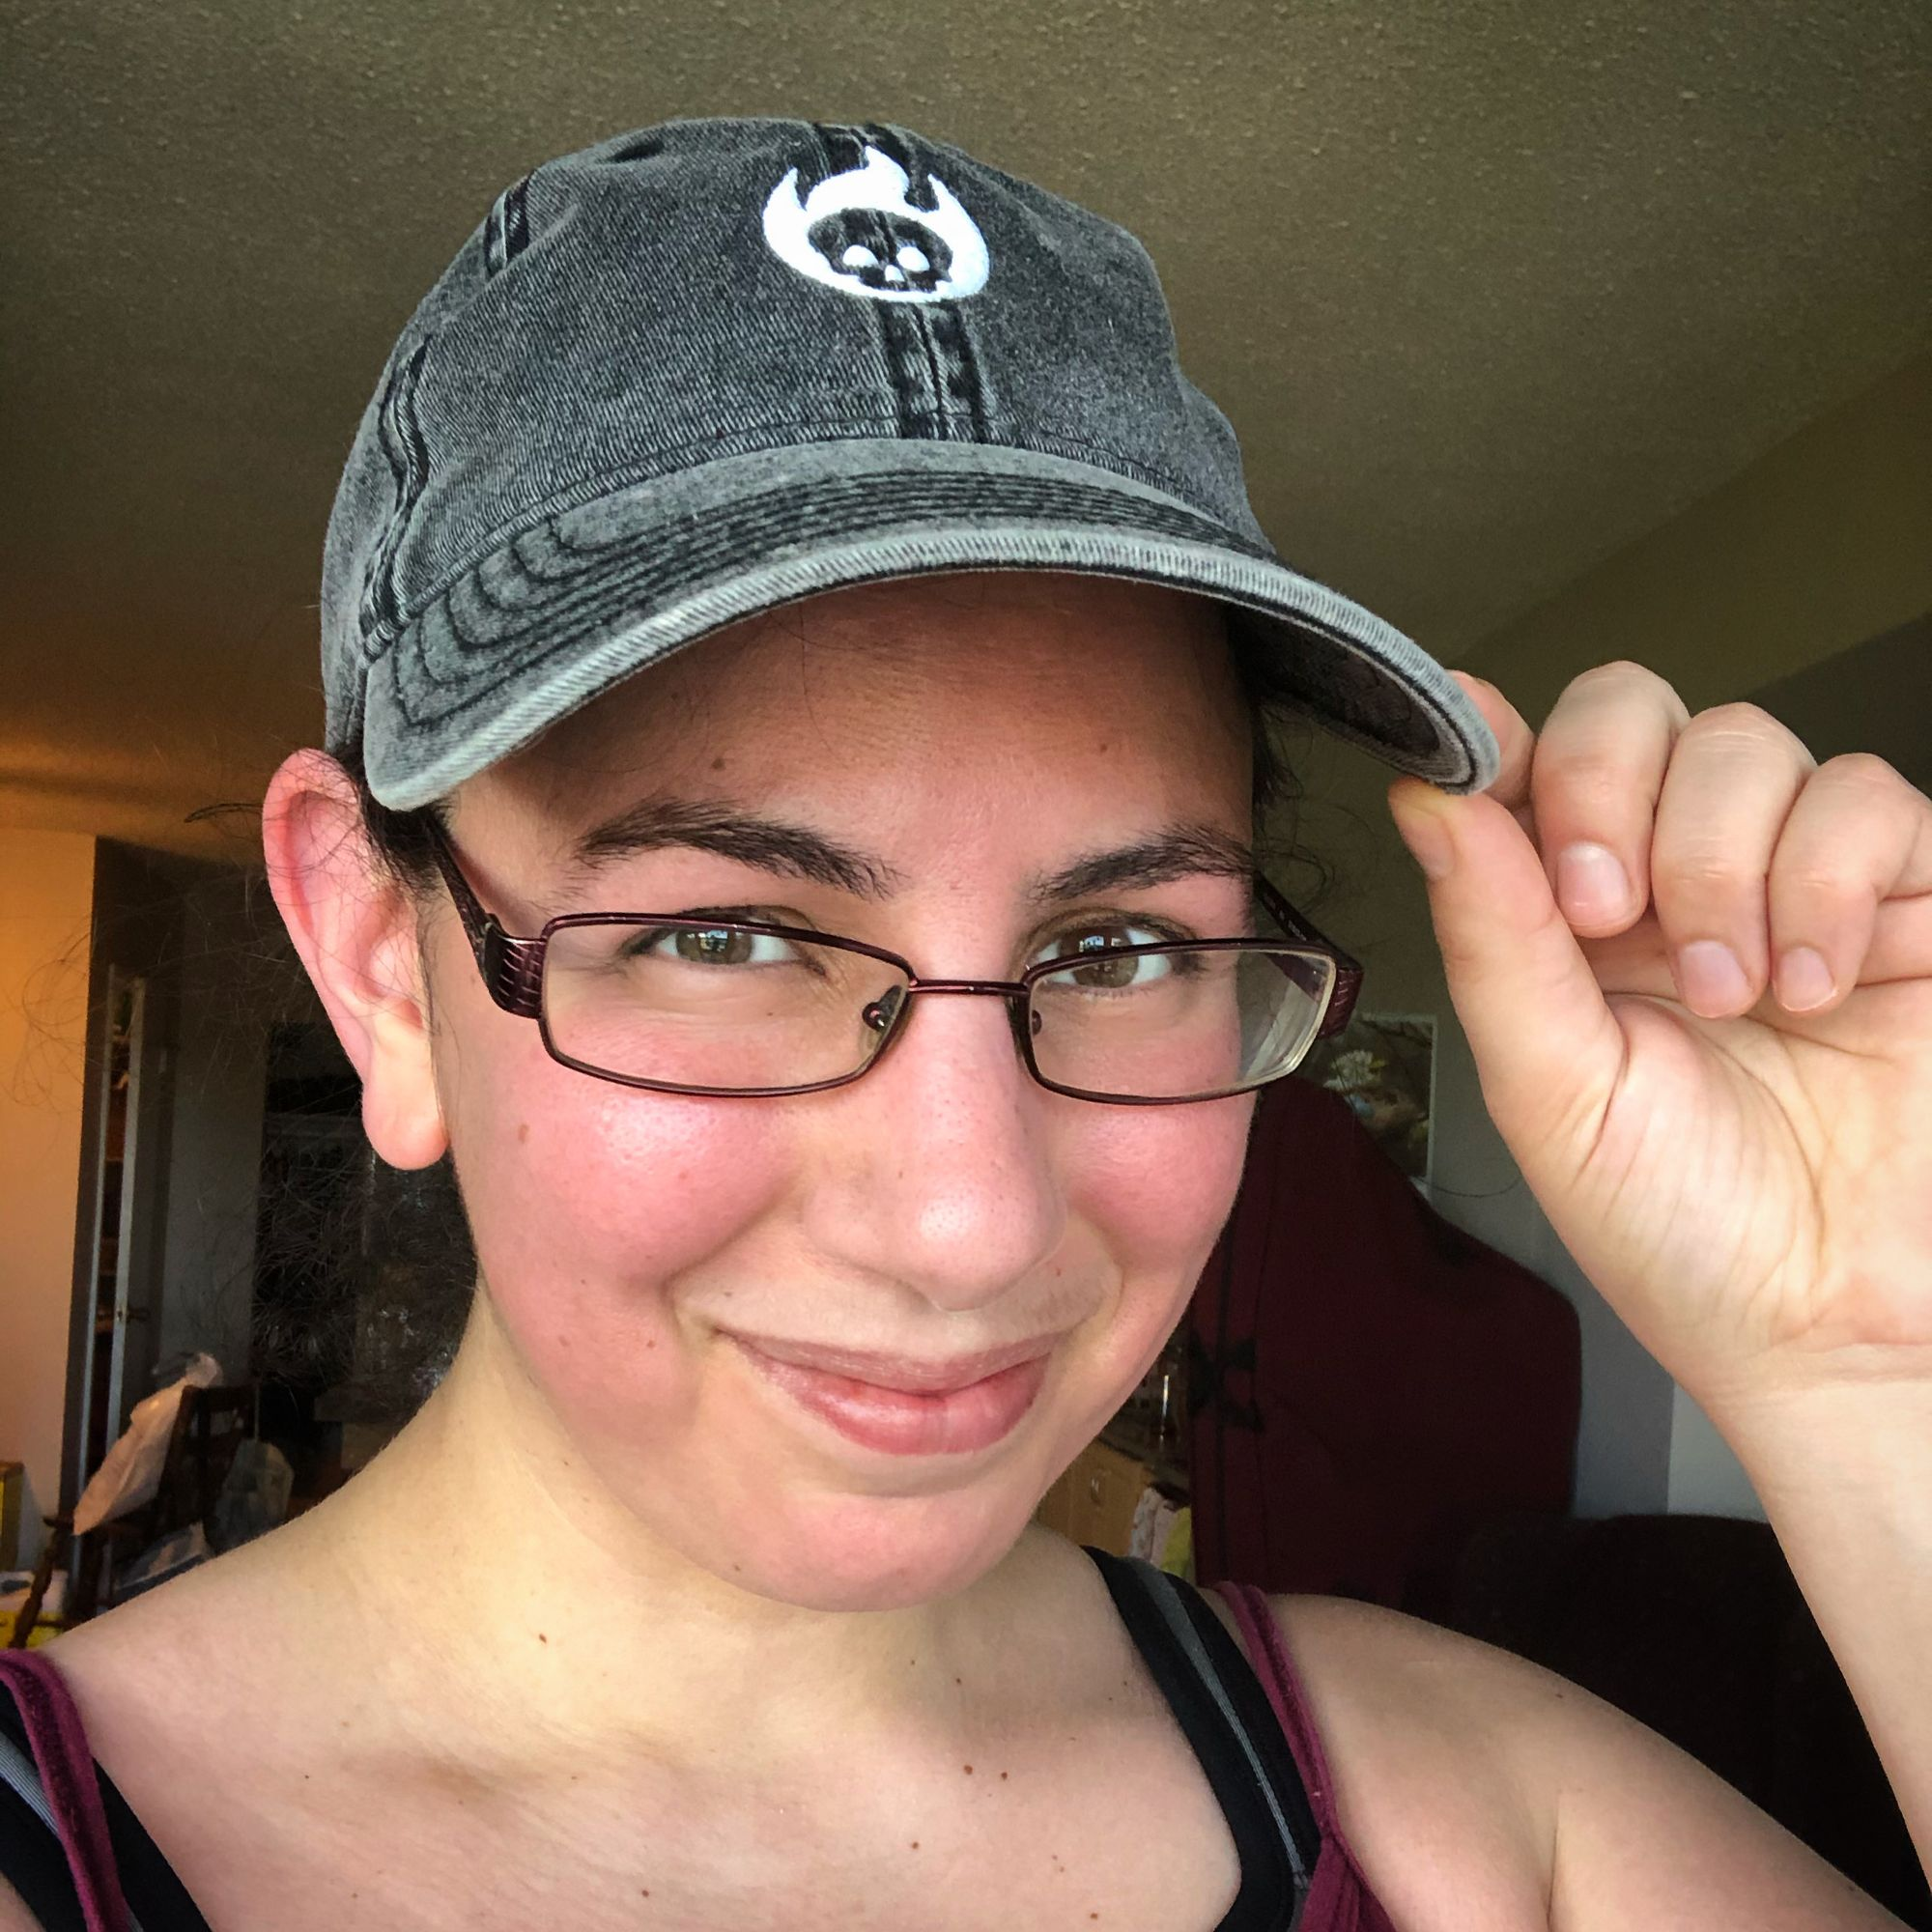 Selfie: close up on my sweaty pink post-run face while wearing a grey denim blaseball cap, featuring a stylized logo of a white embroidered skull engulfed in flame. I'm touching the brim of the cat with two fingers in a kind of salute to show off the merch.